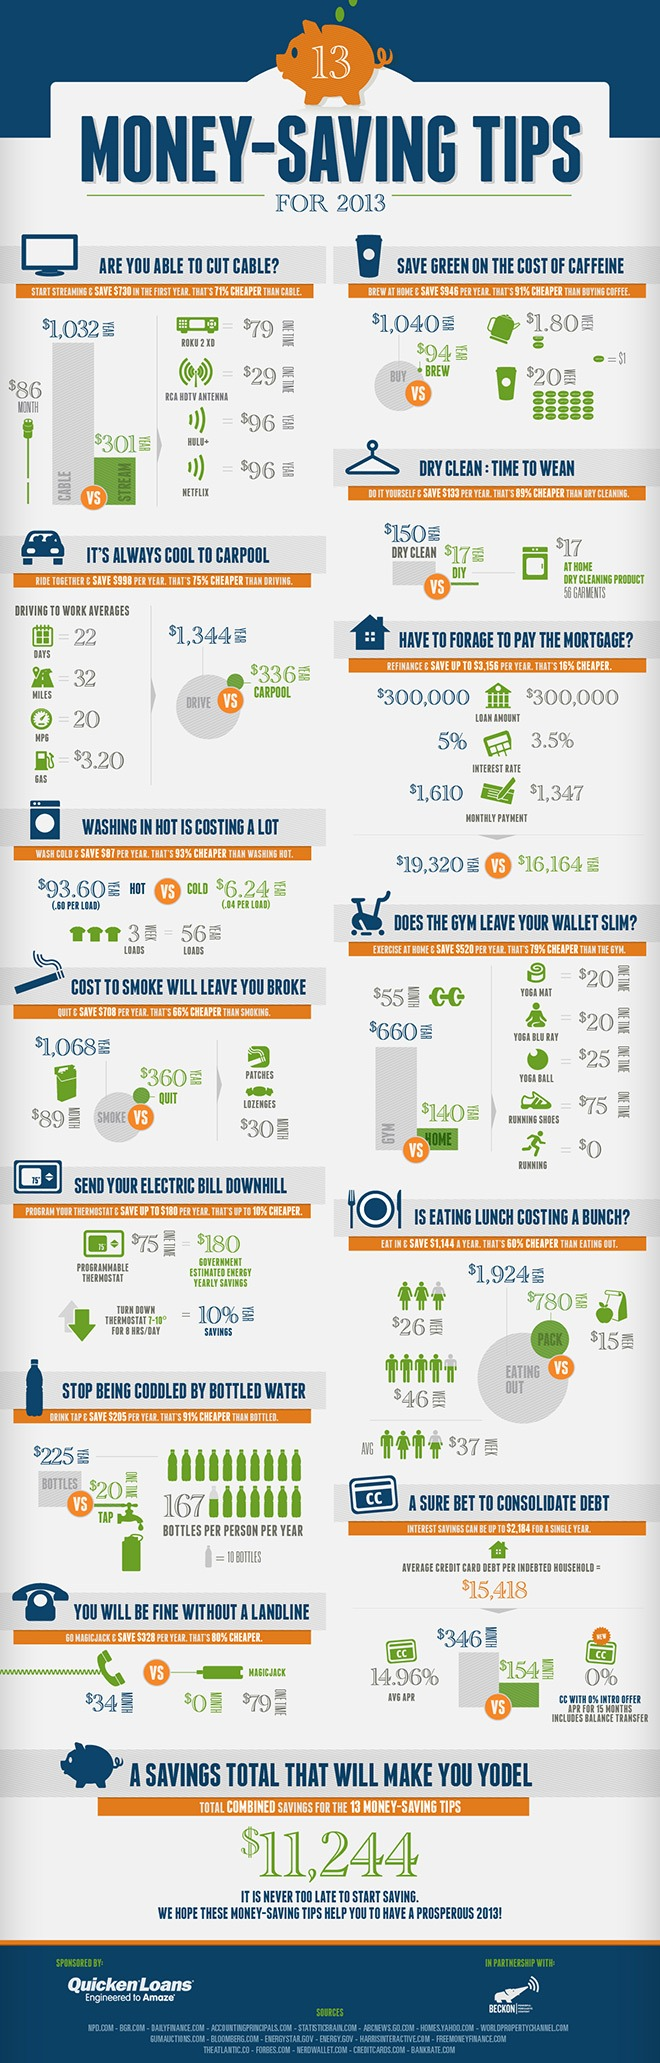 money saving tips web optimized 13 Money Saving Tips for 2013 Infographic